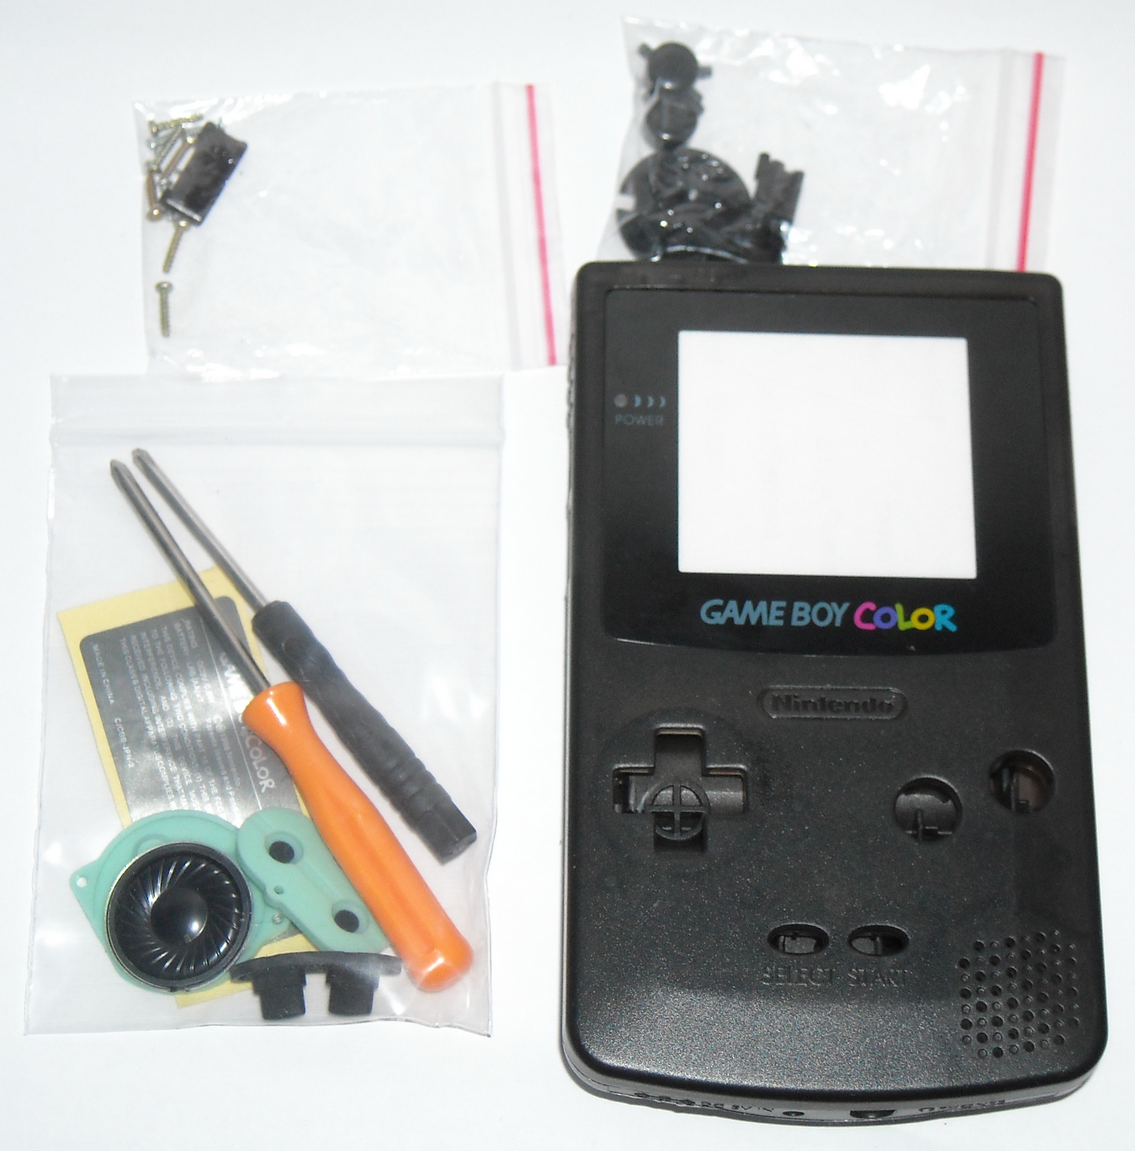 Game Boy Color Reshell Tutorial and Review